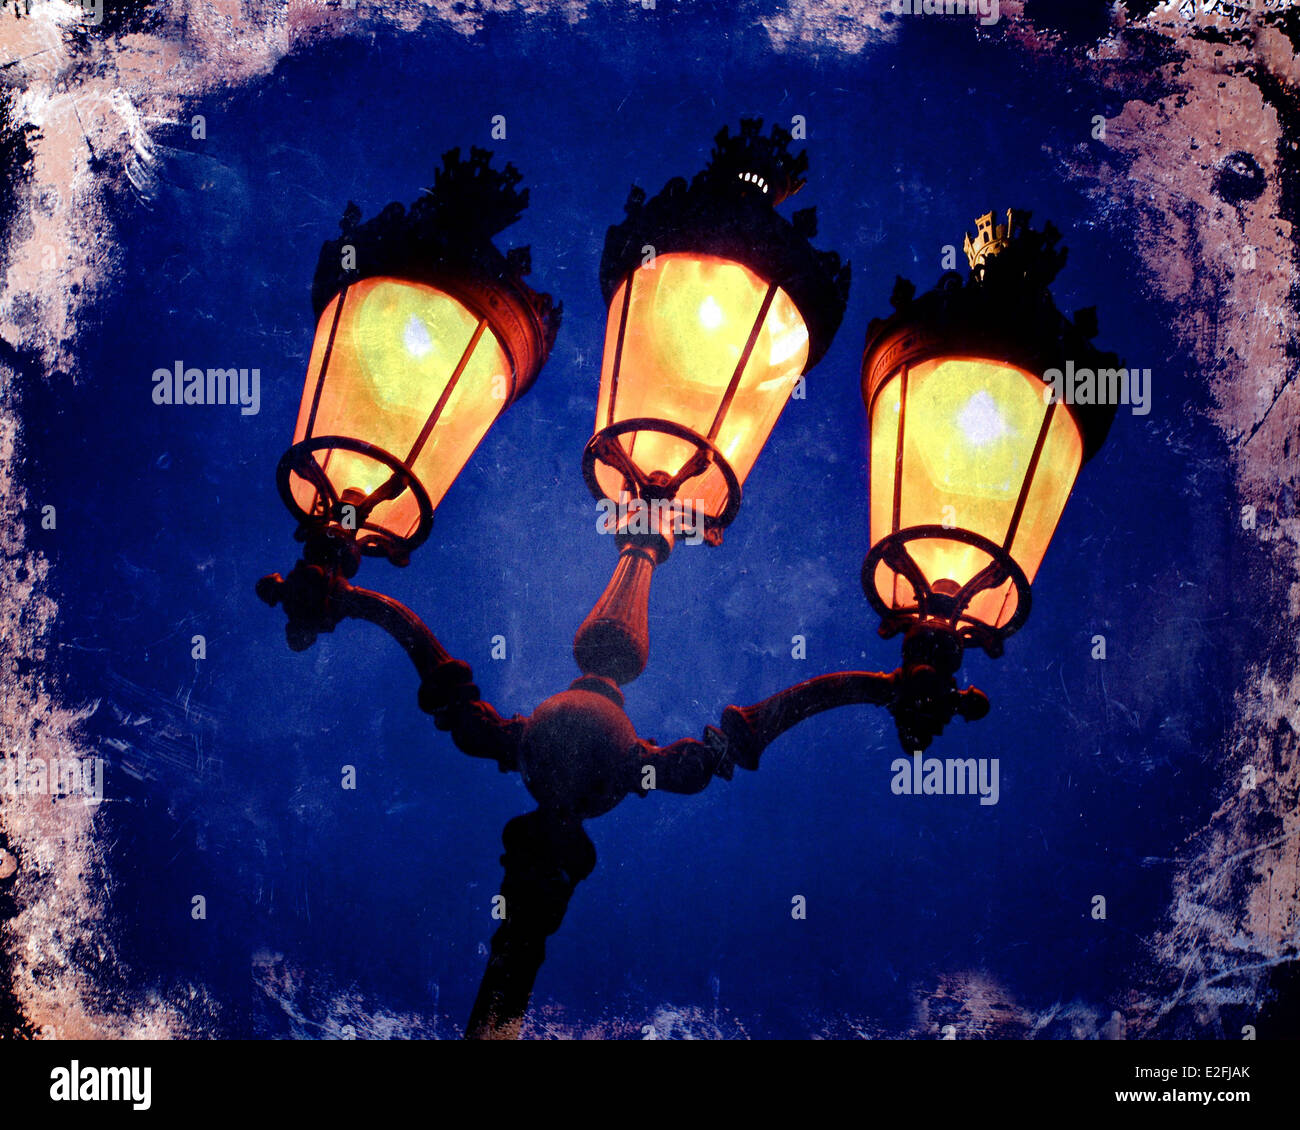 Street lamp illuminated - art effect image - Stock Image